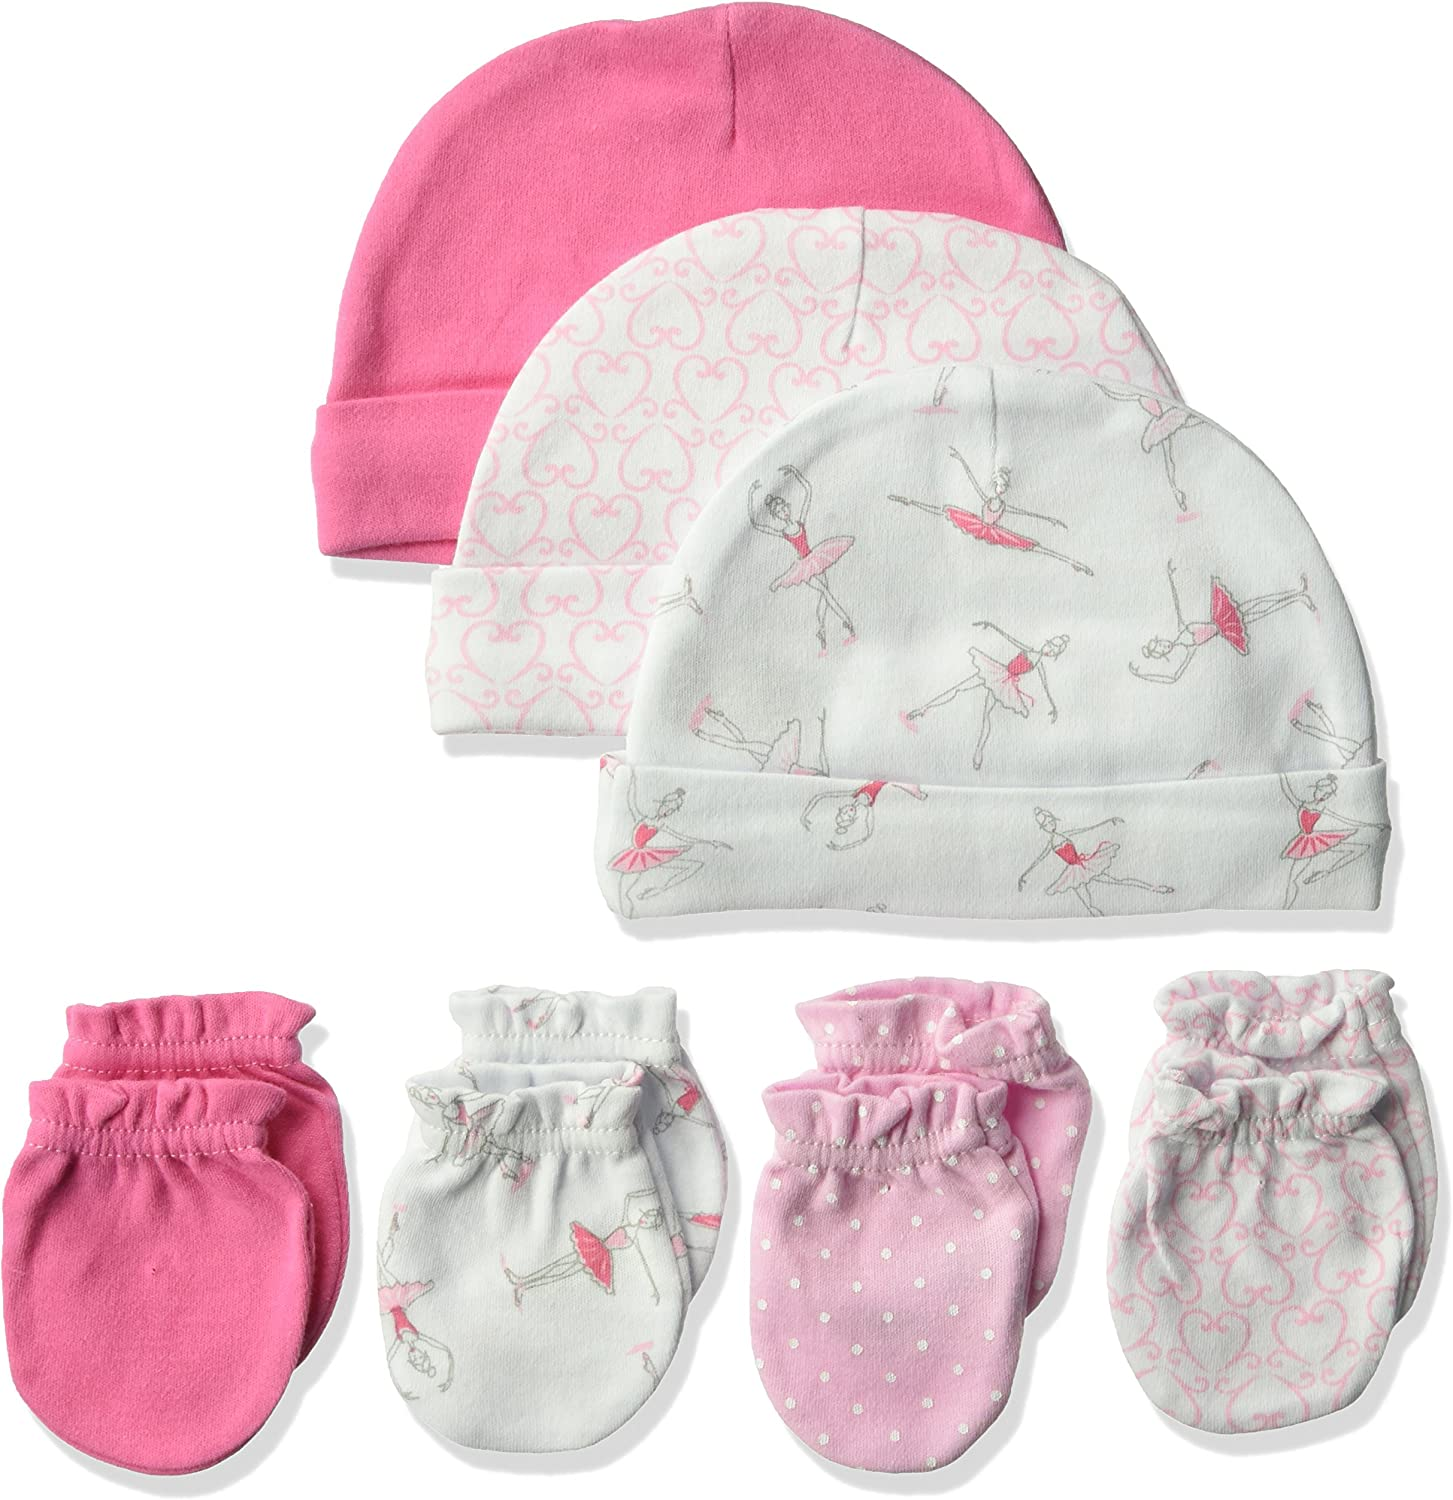 Hudson Baby Unisex Baby Cotton Cap and Scratch Mitten Set, Ballerina, 0-6 Months